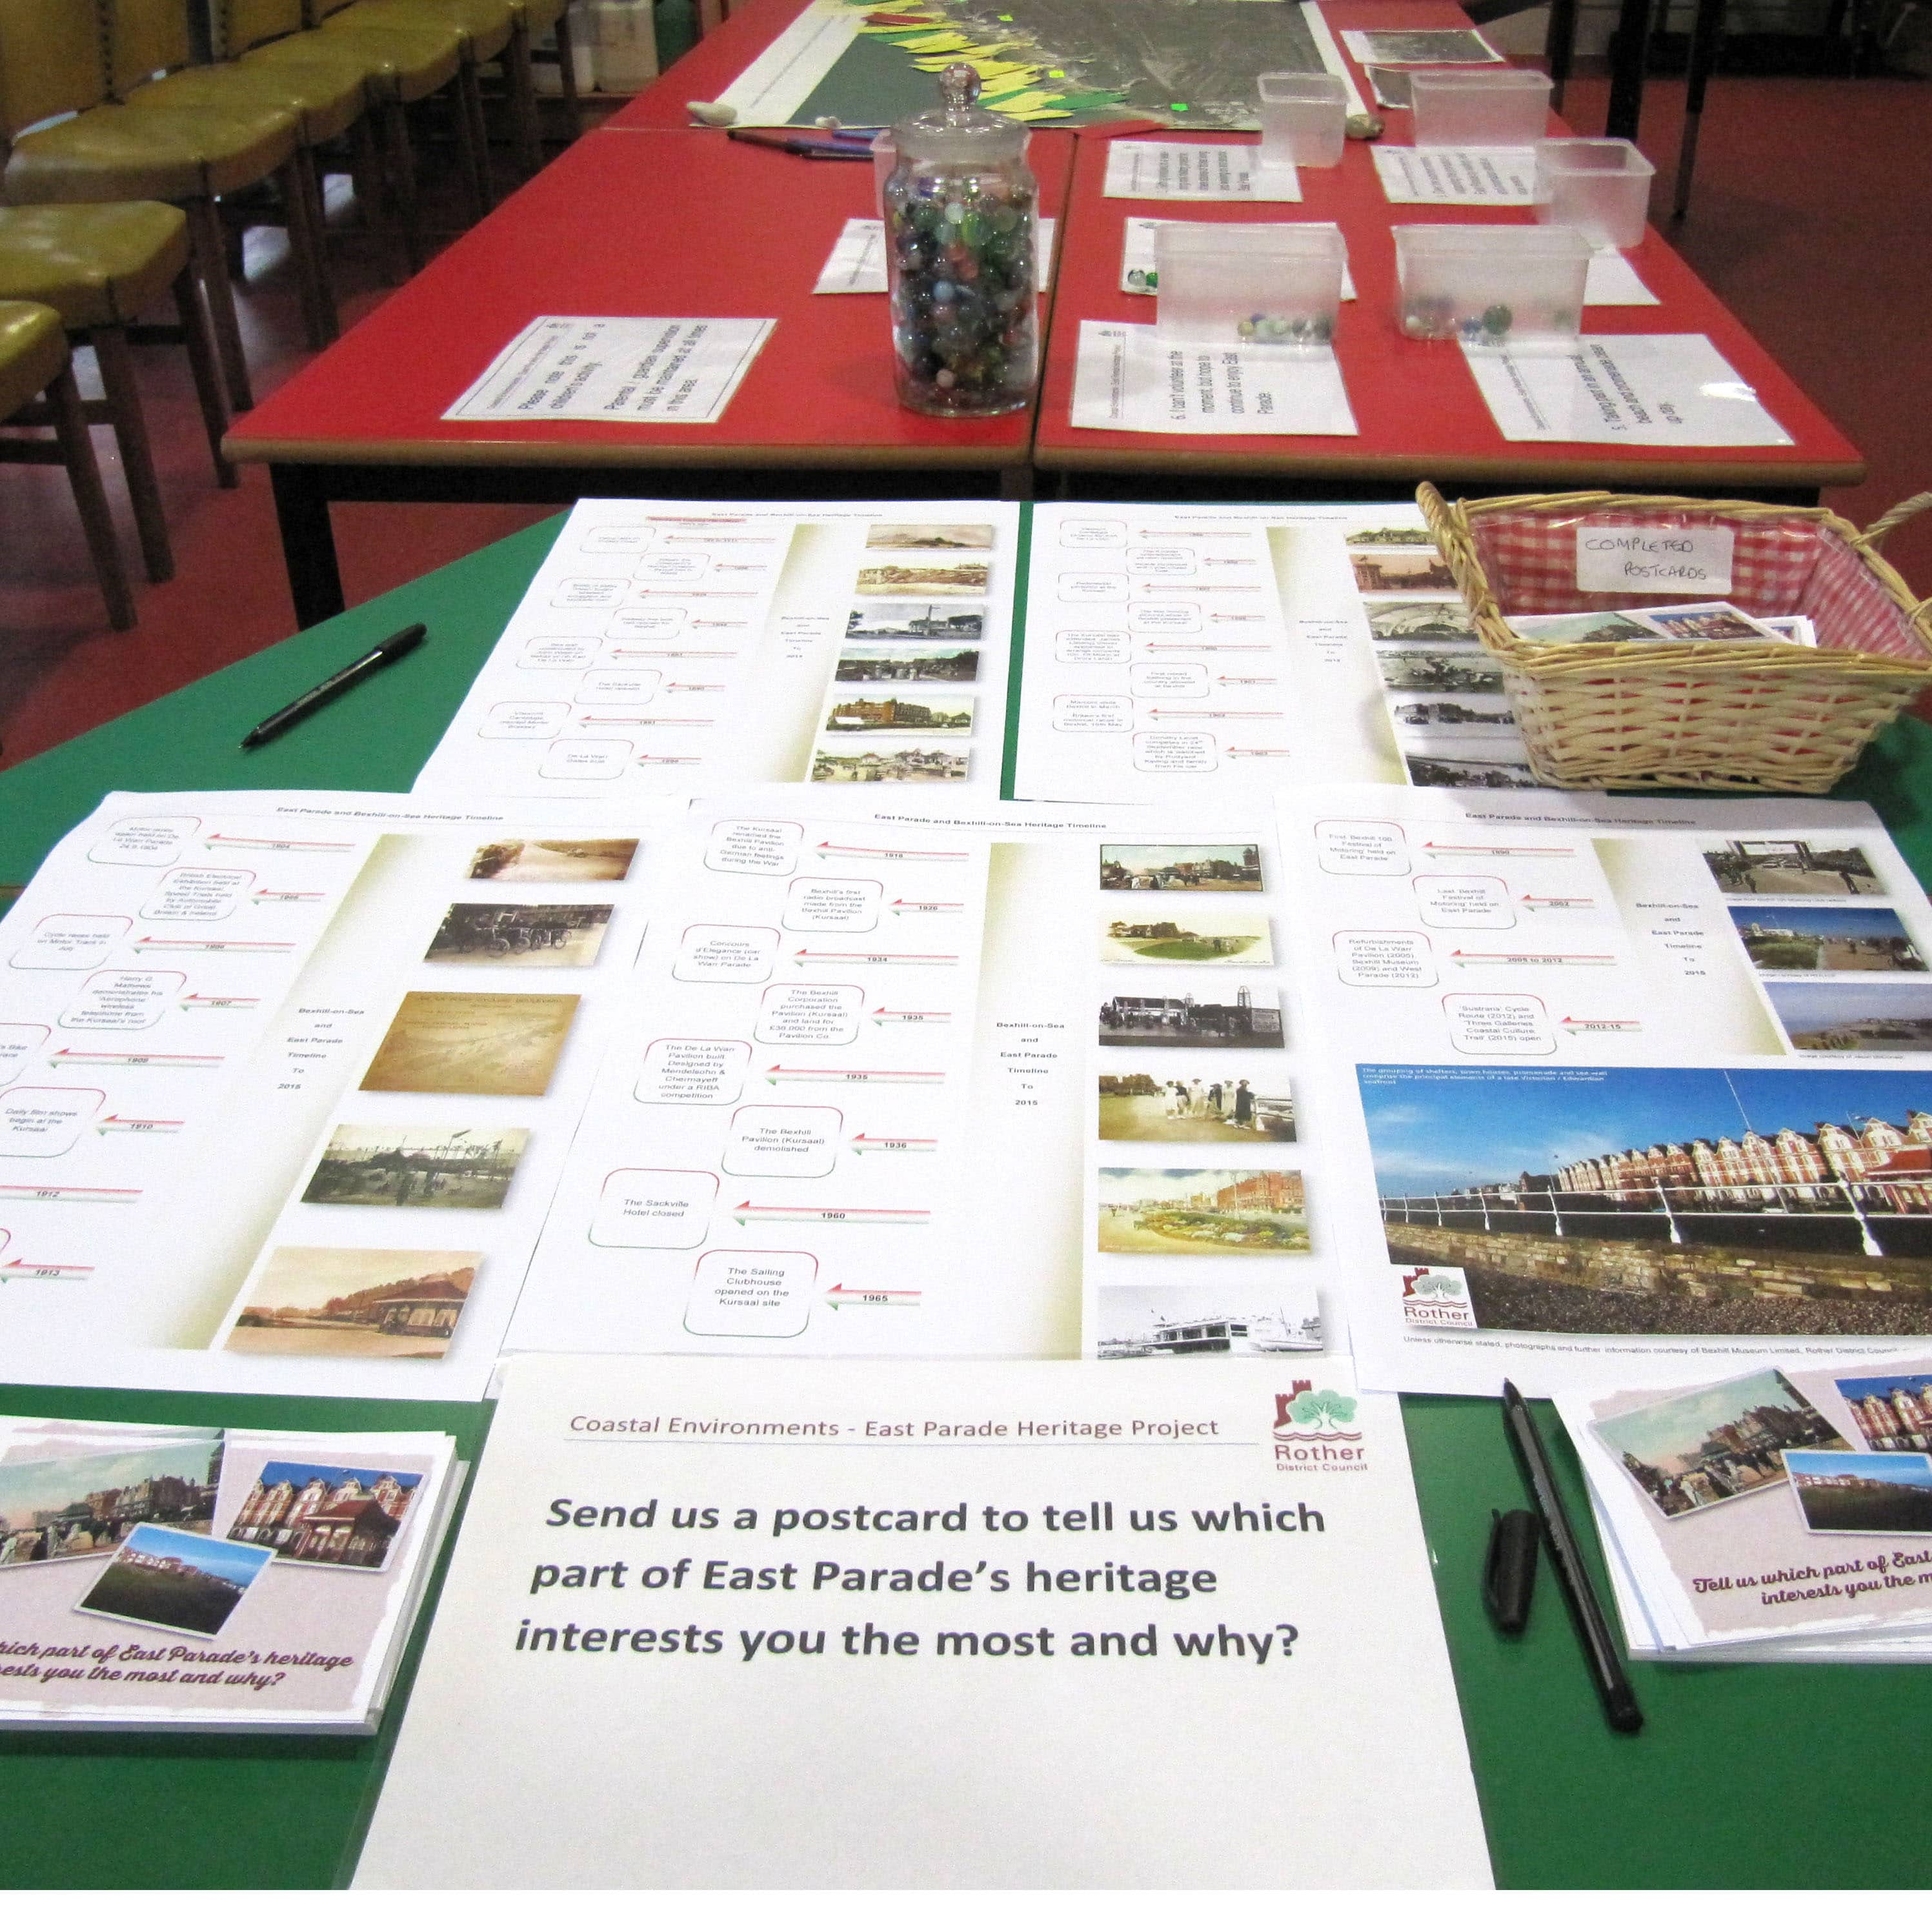 Table with boards and images and text on, asking people to provide feedback.